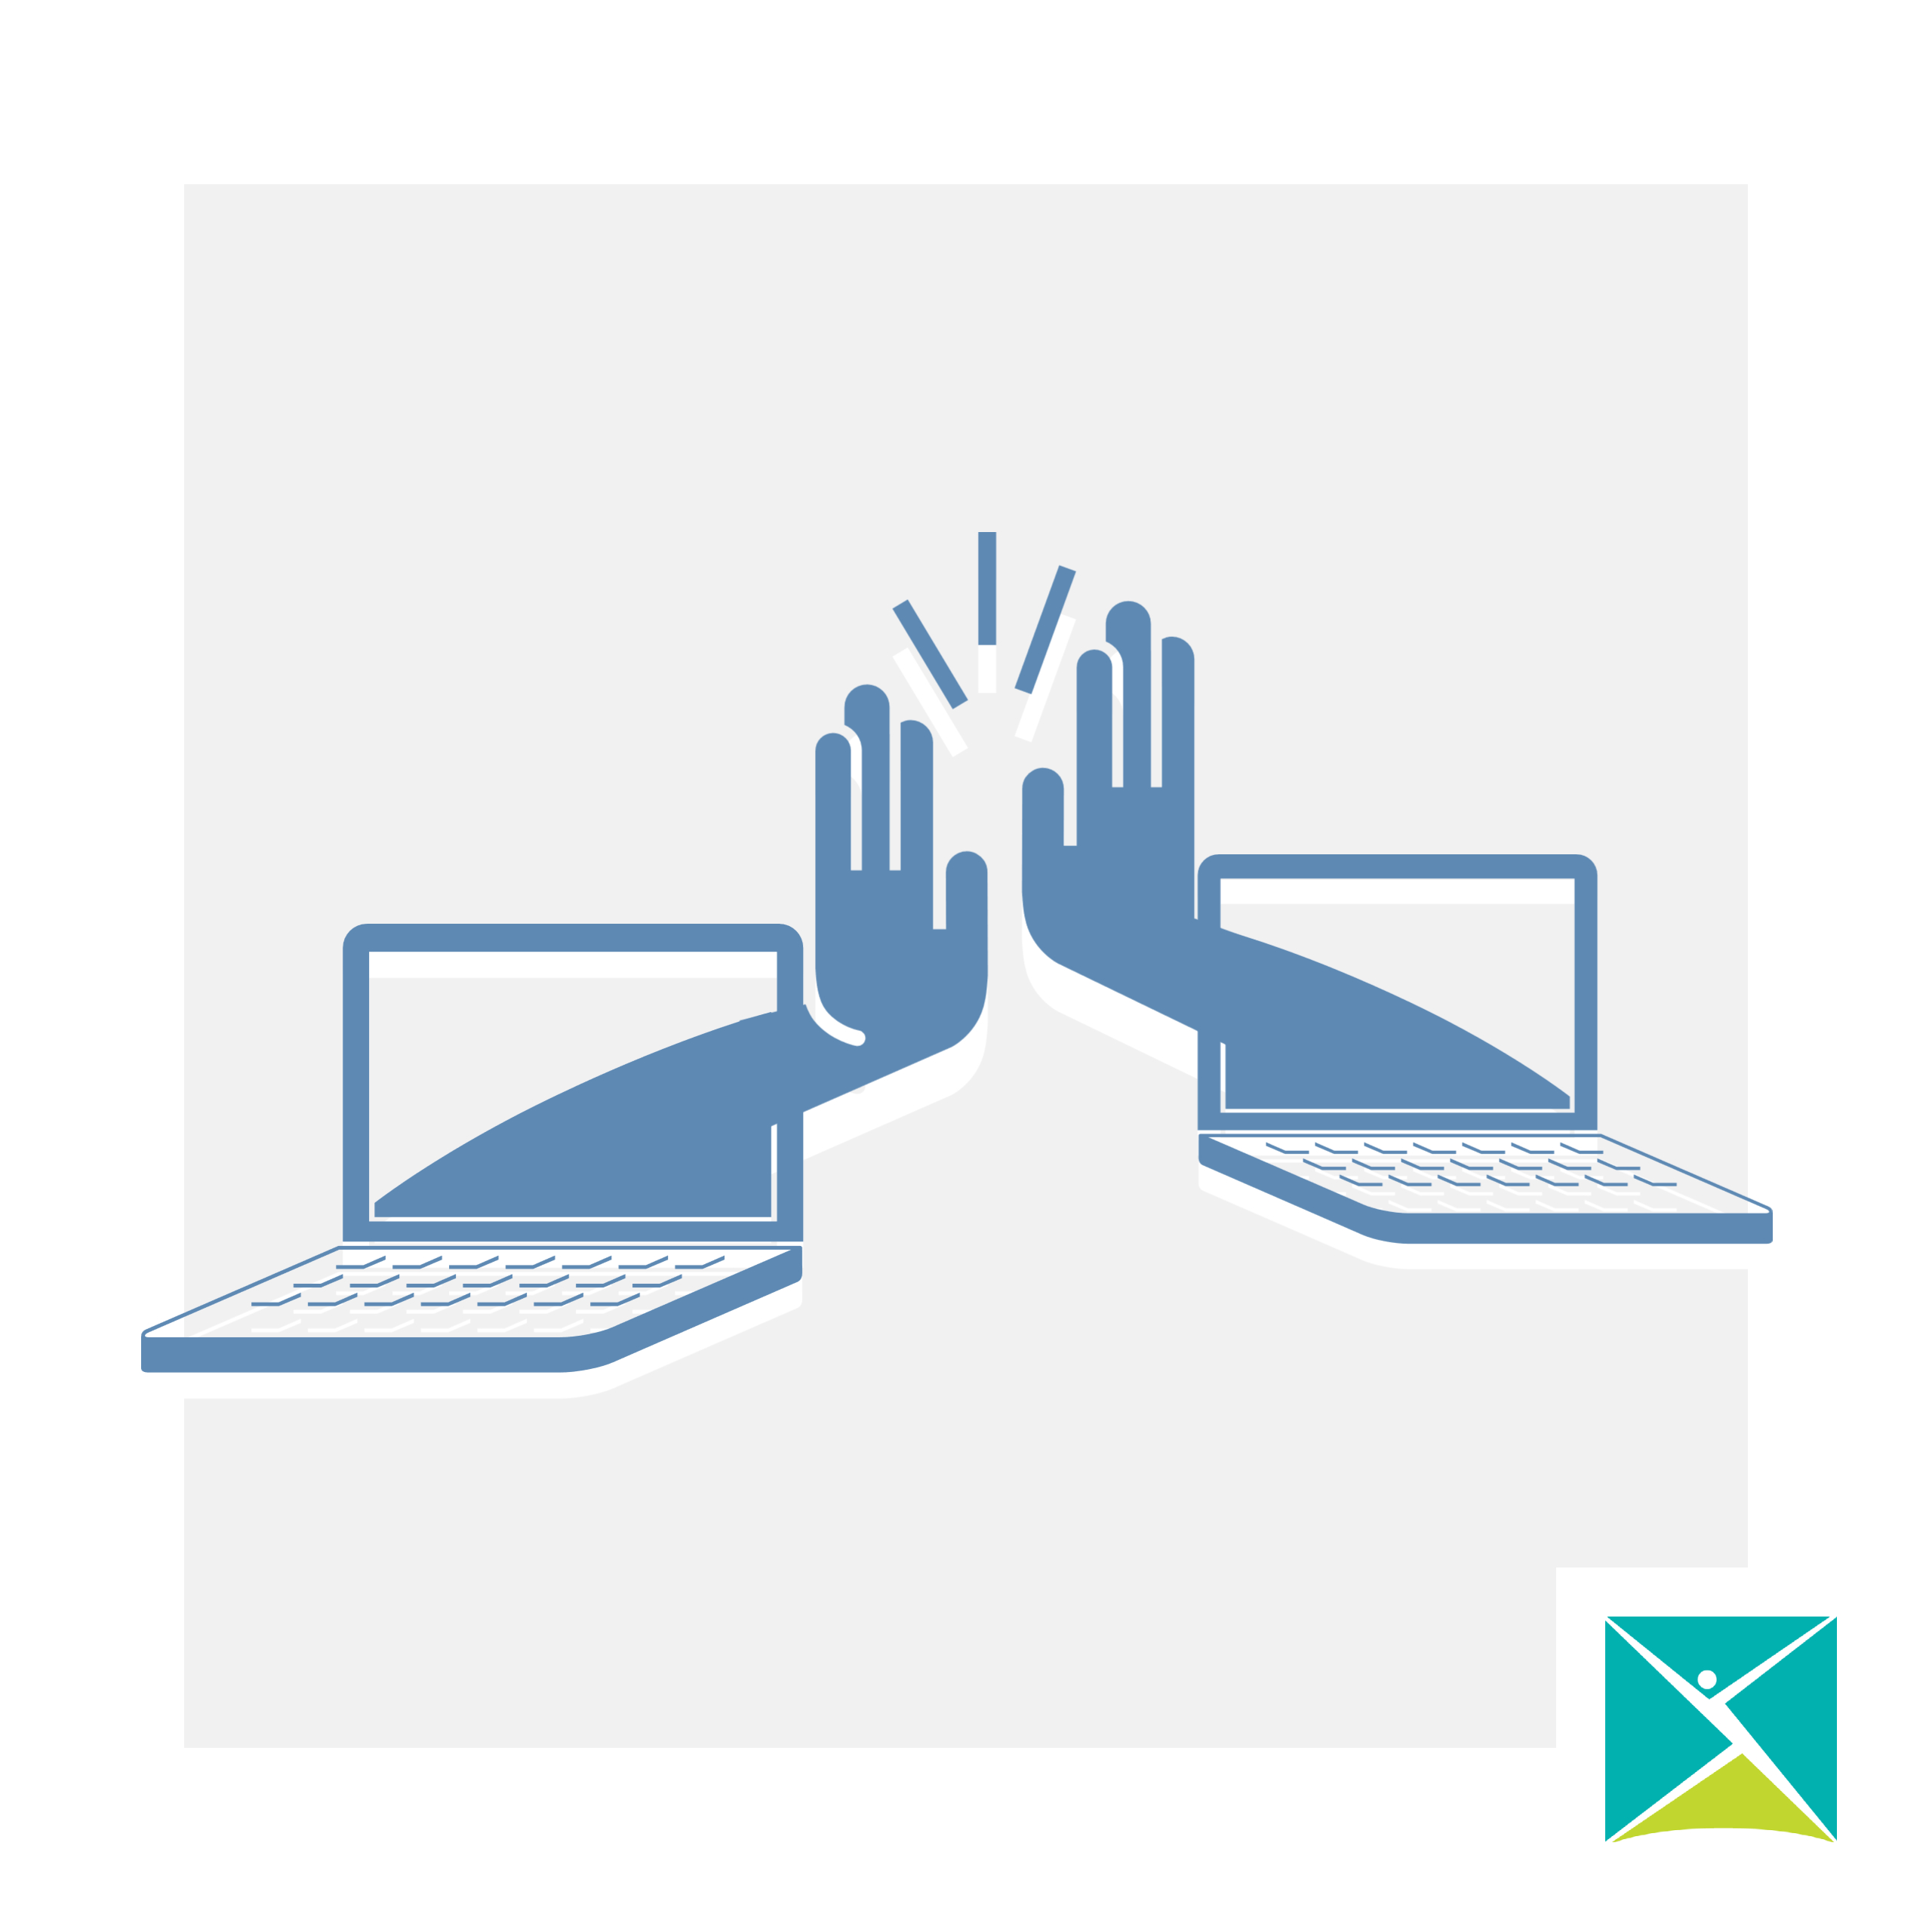 an illustration of two hands emerging from two laptops, high fiving